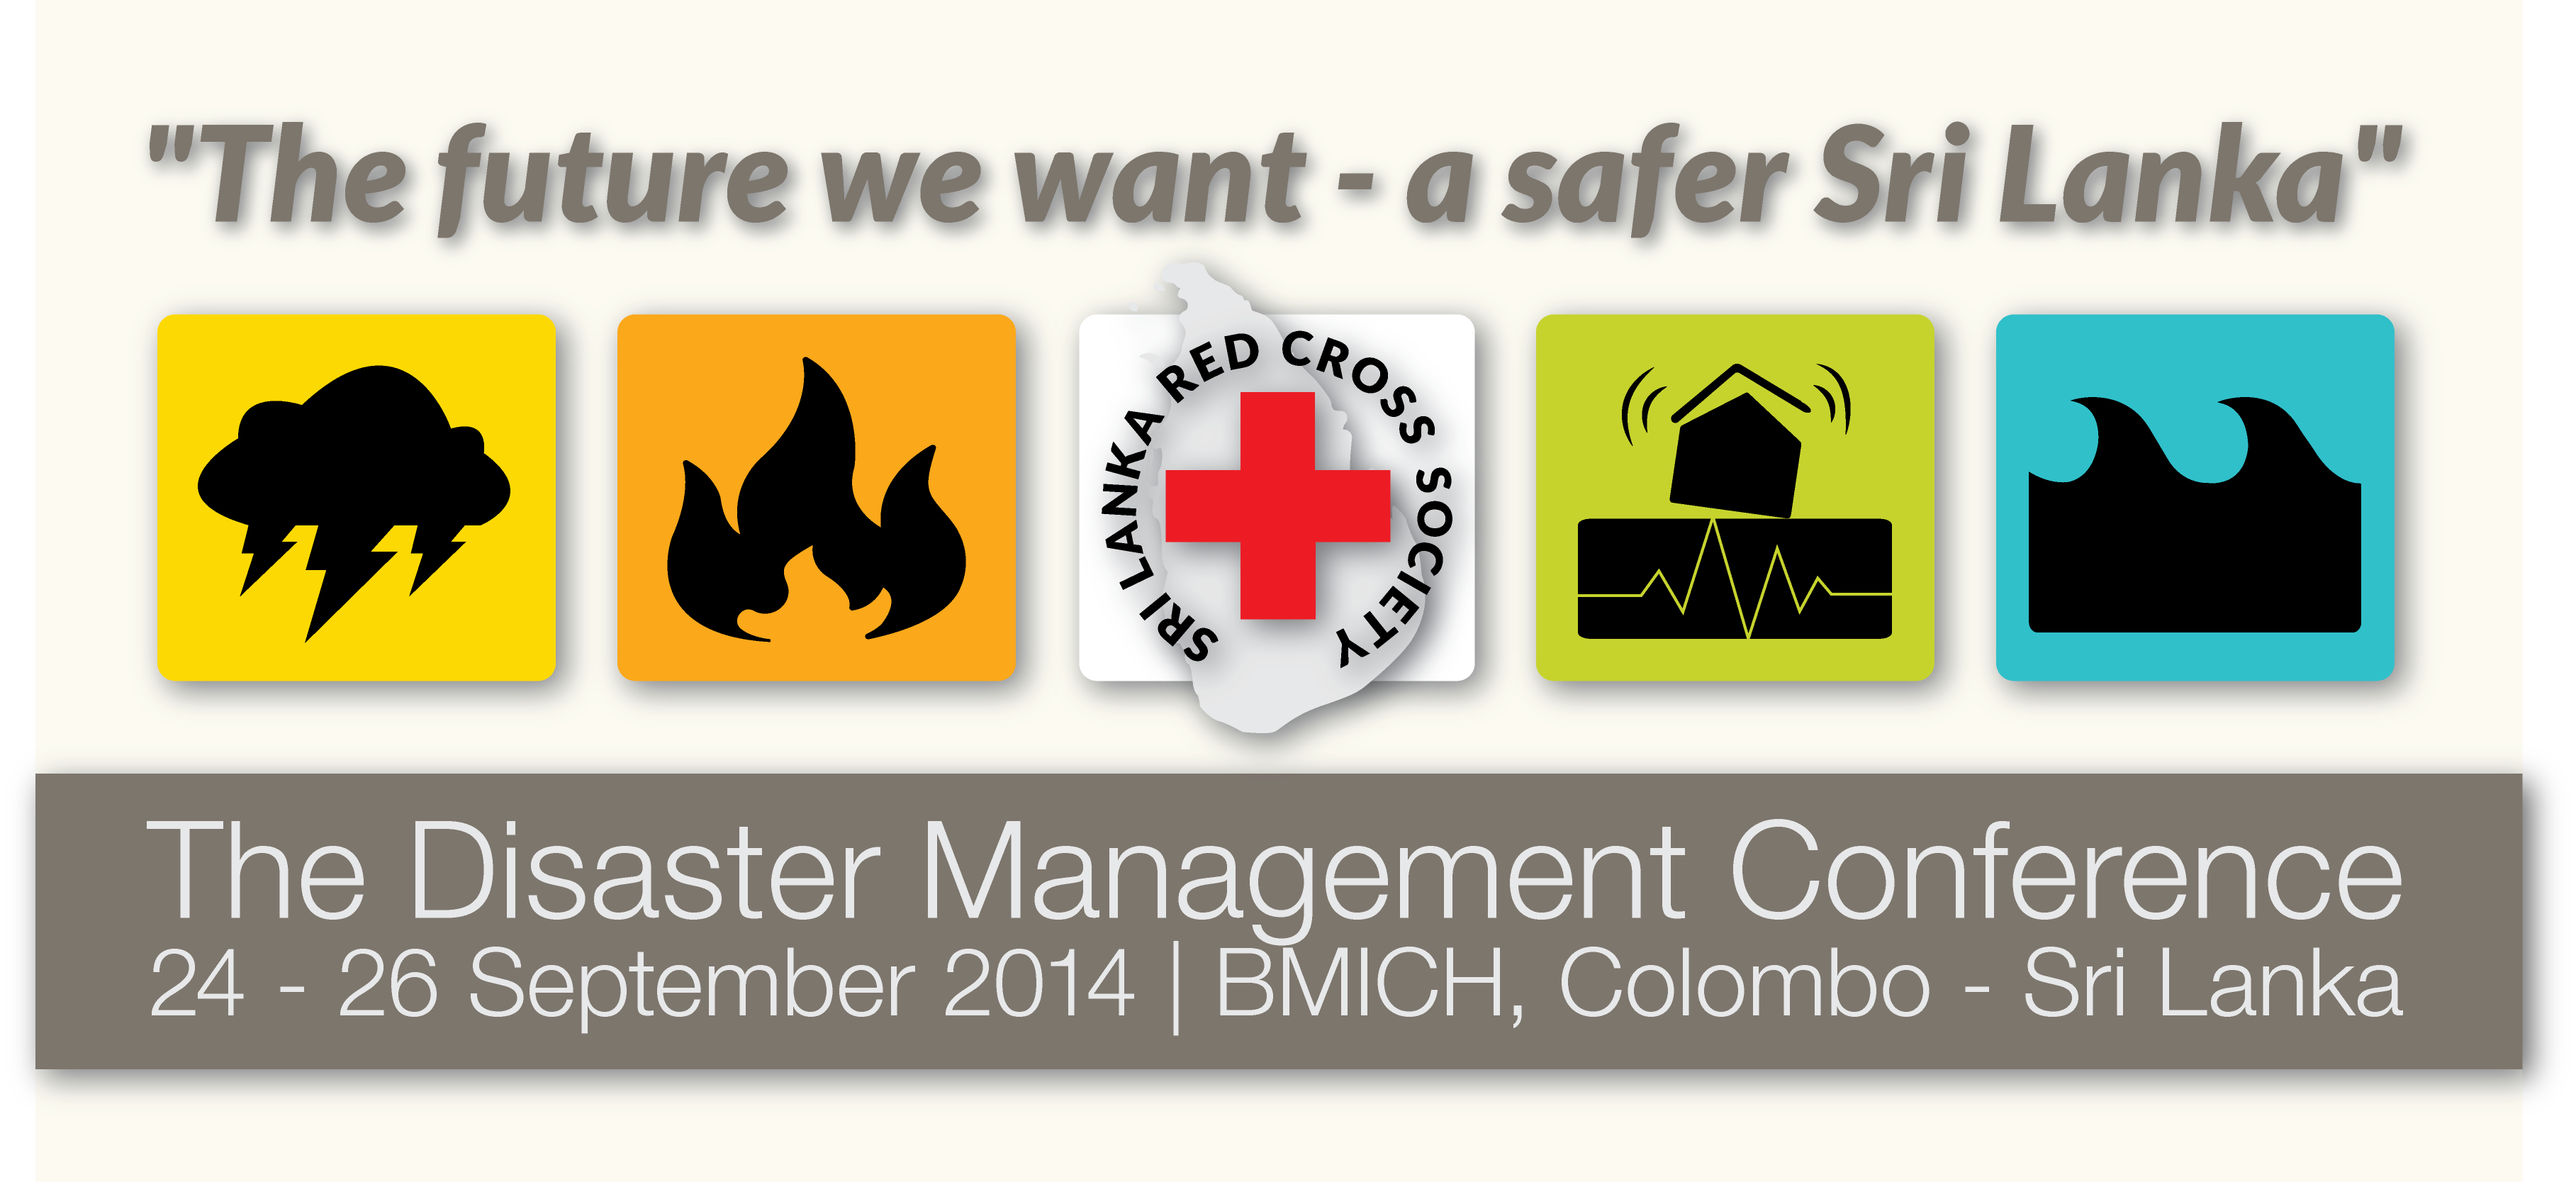 RedCross-banner-2.png